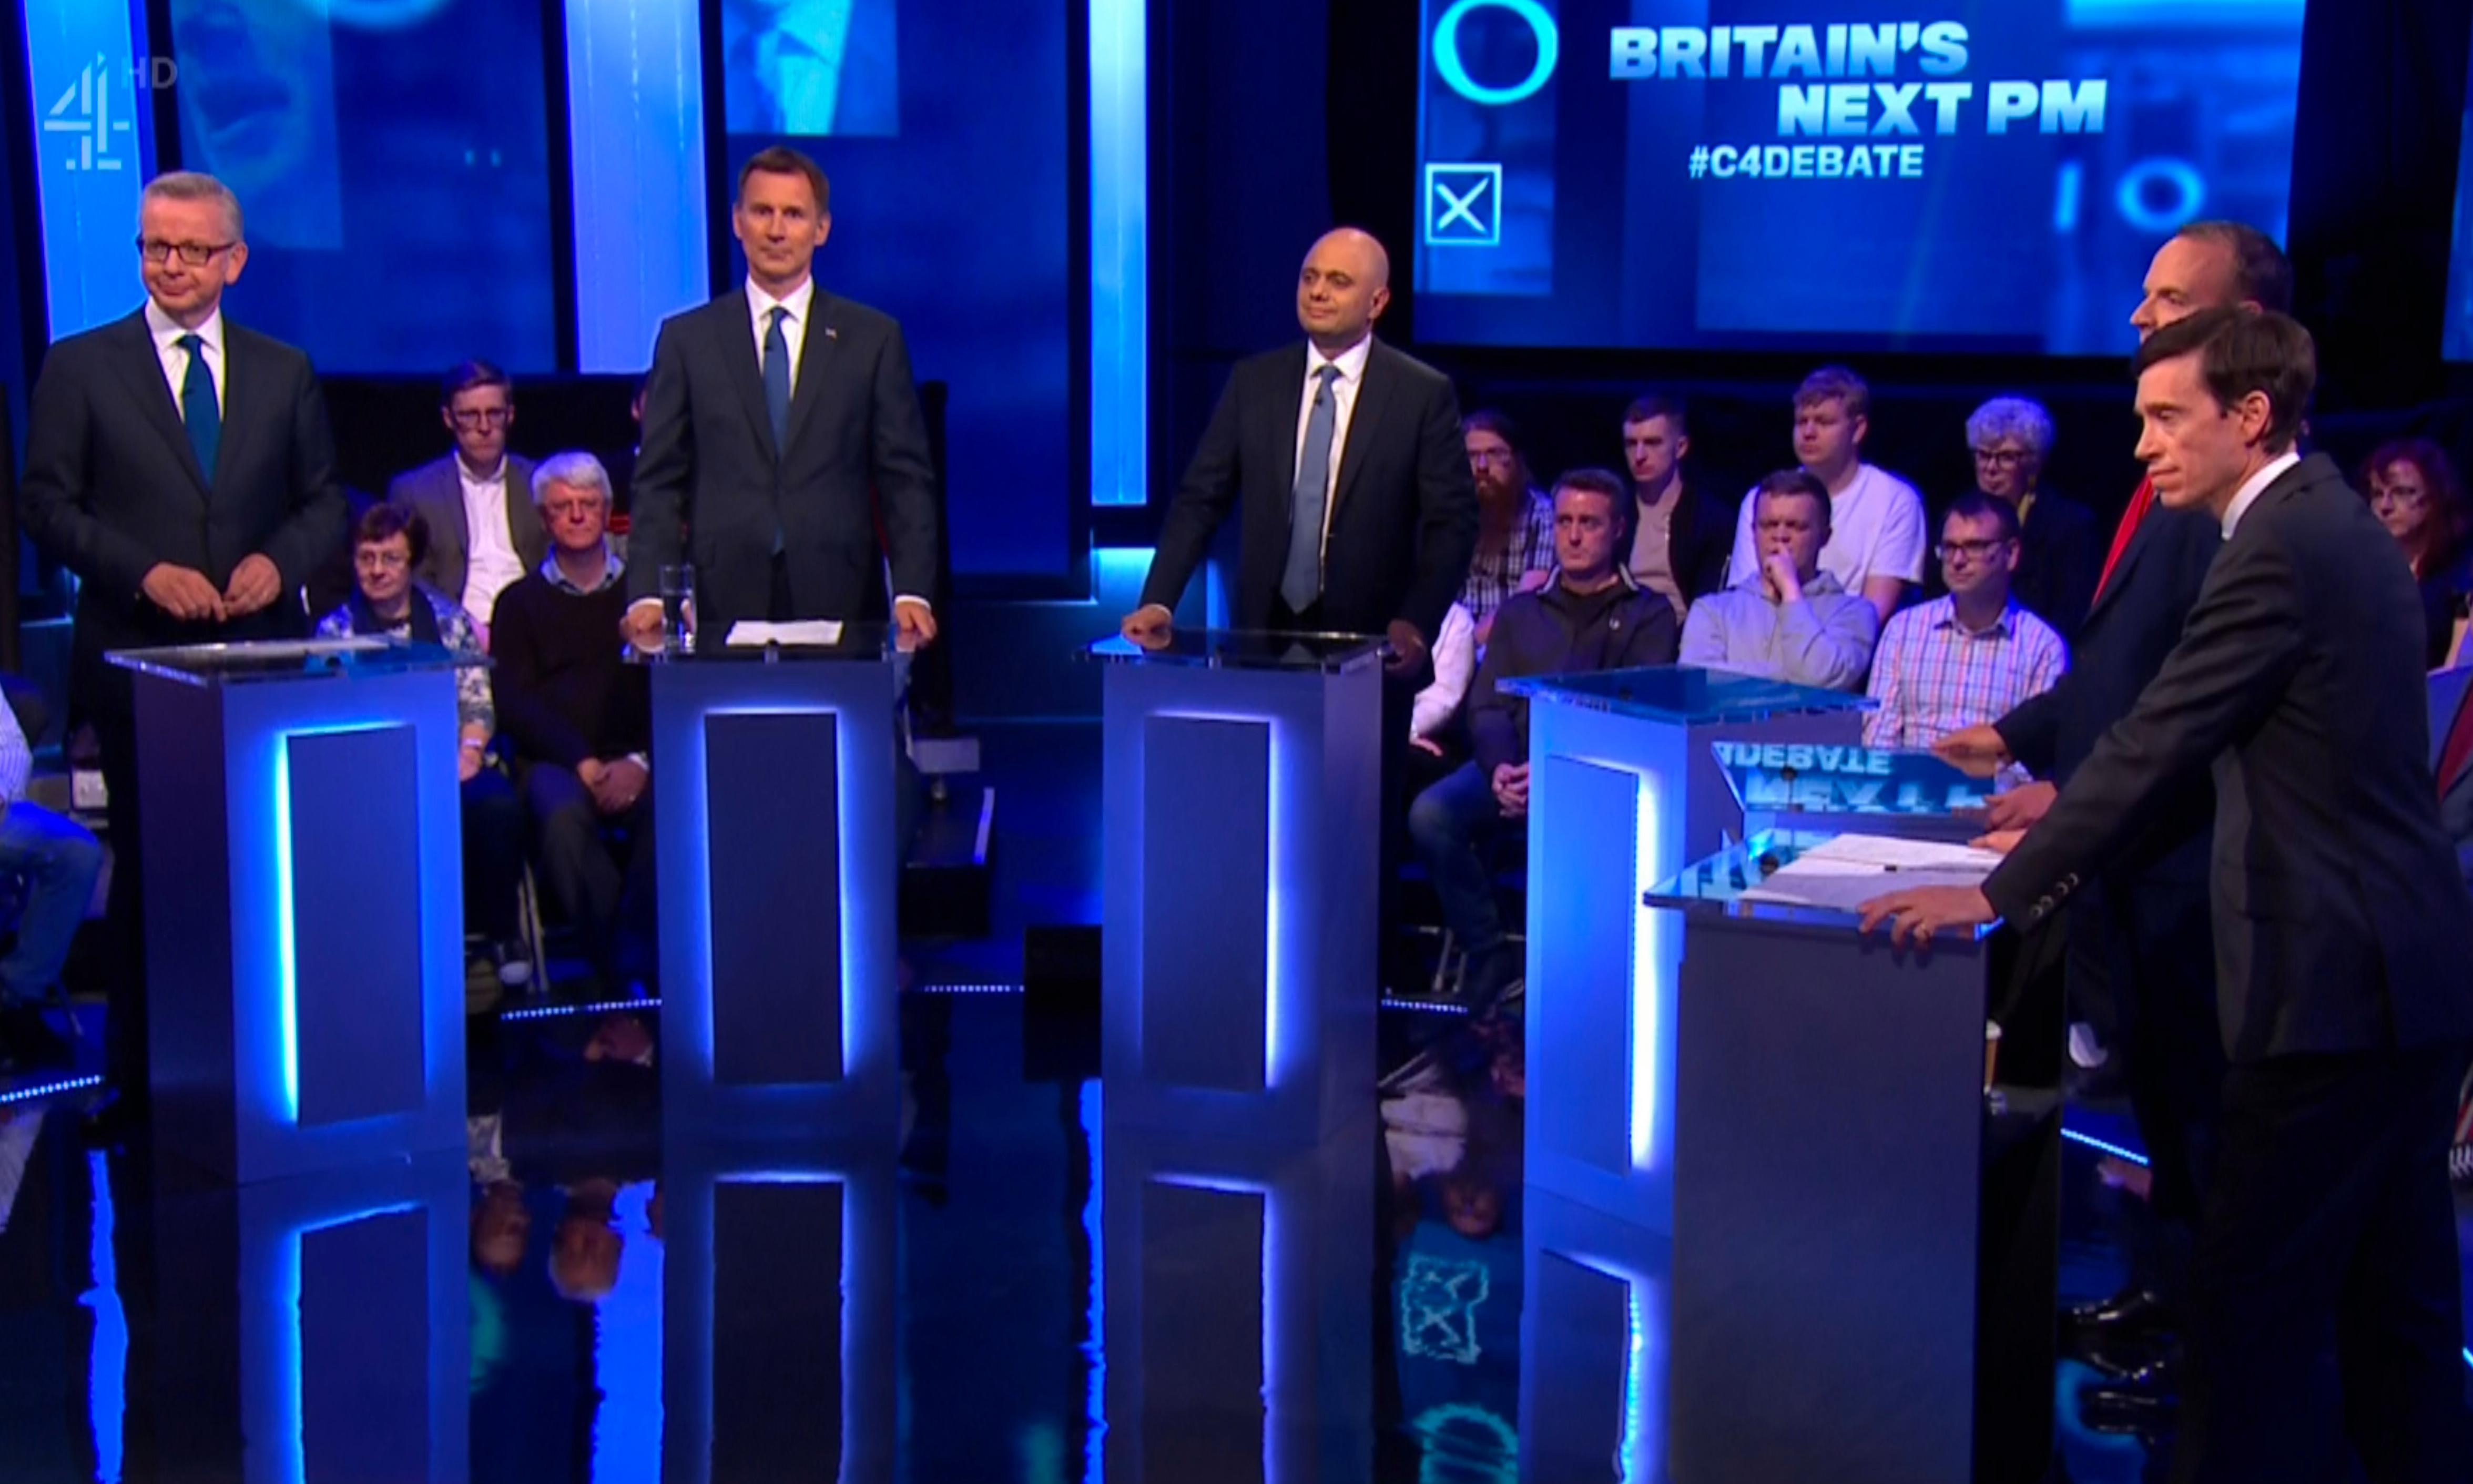 Who were the winners and losers of the Tory leadership debate?